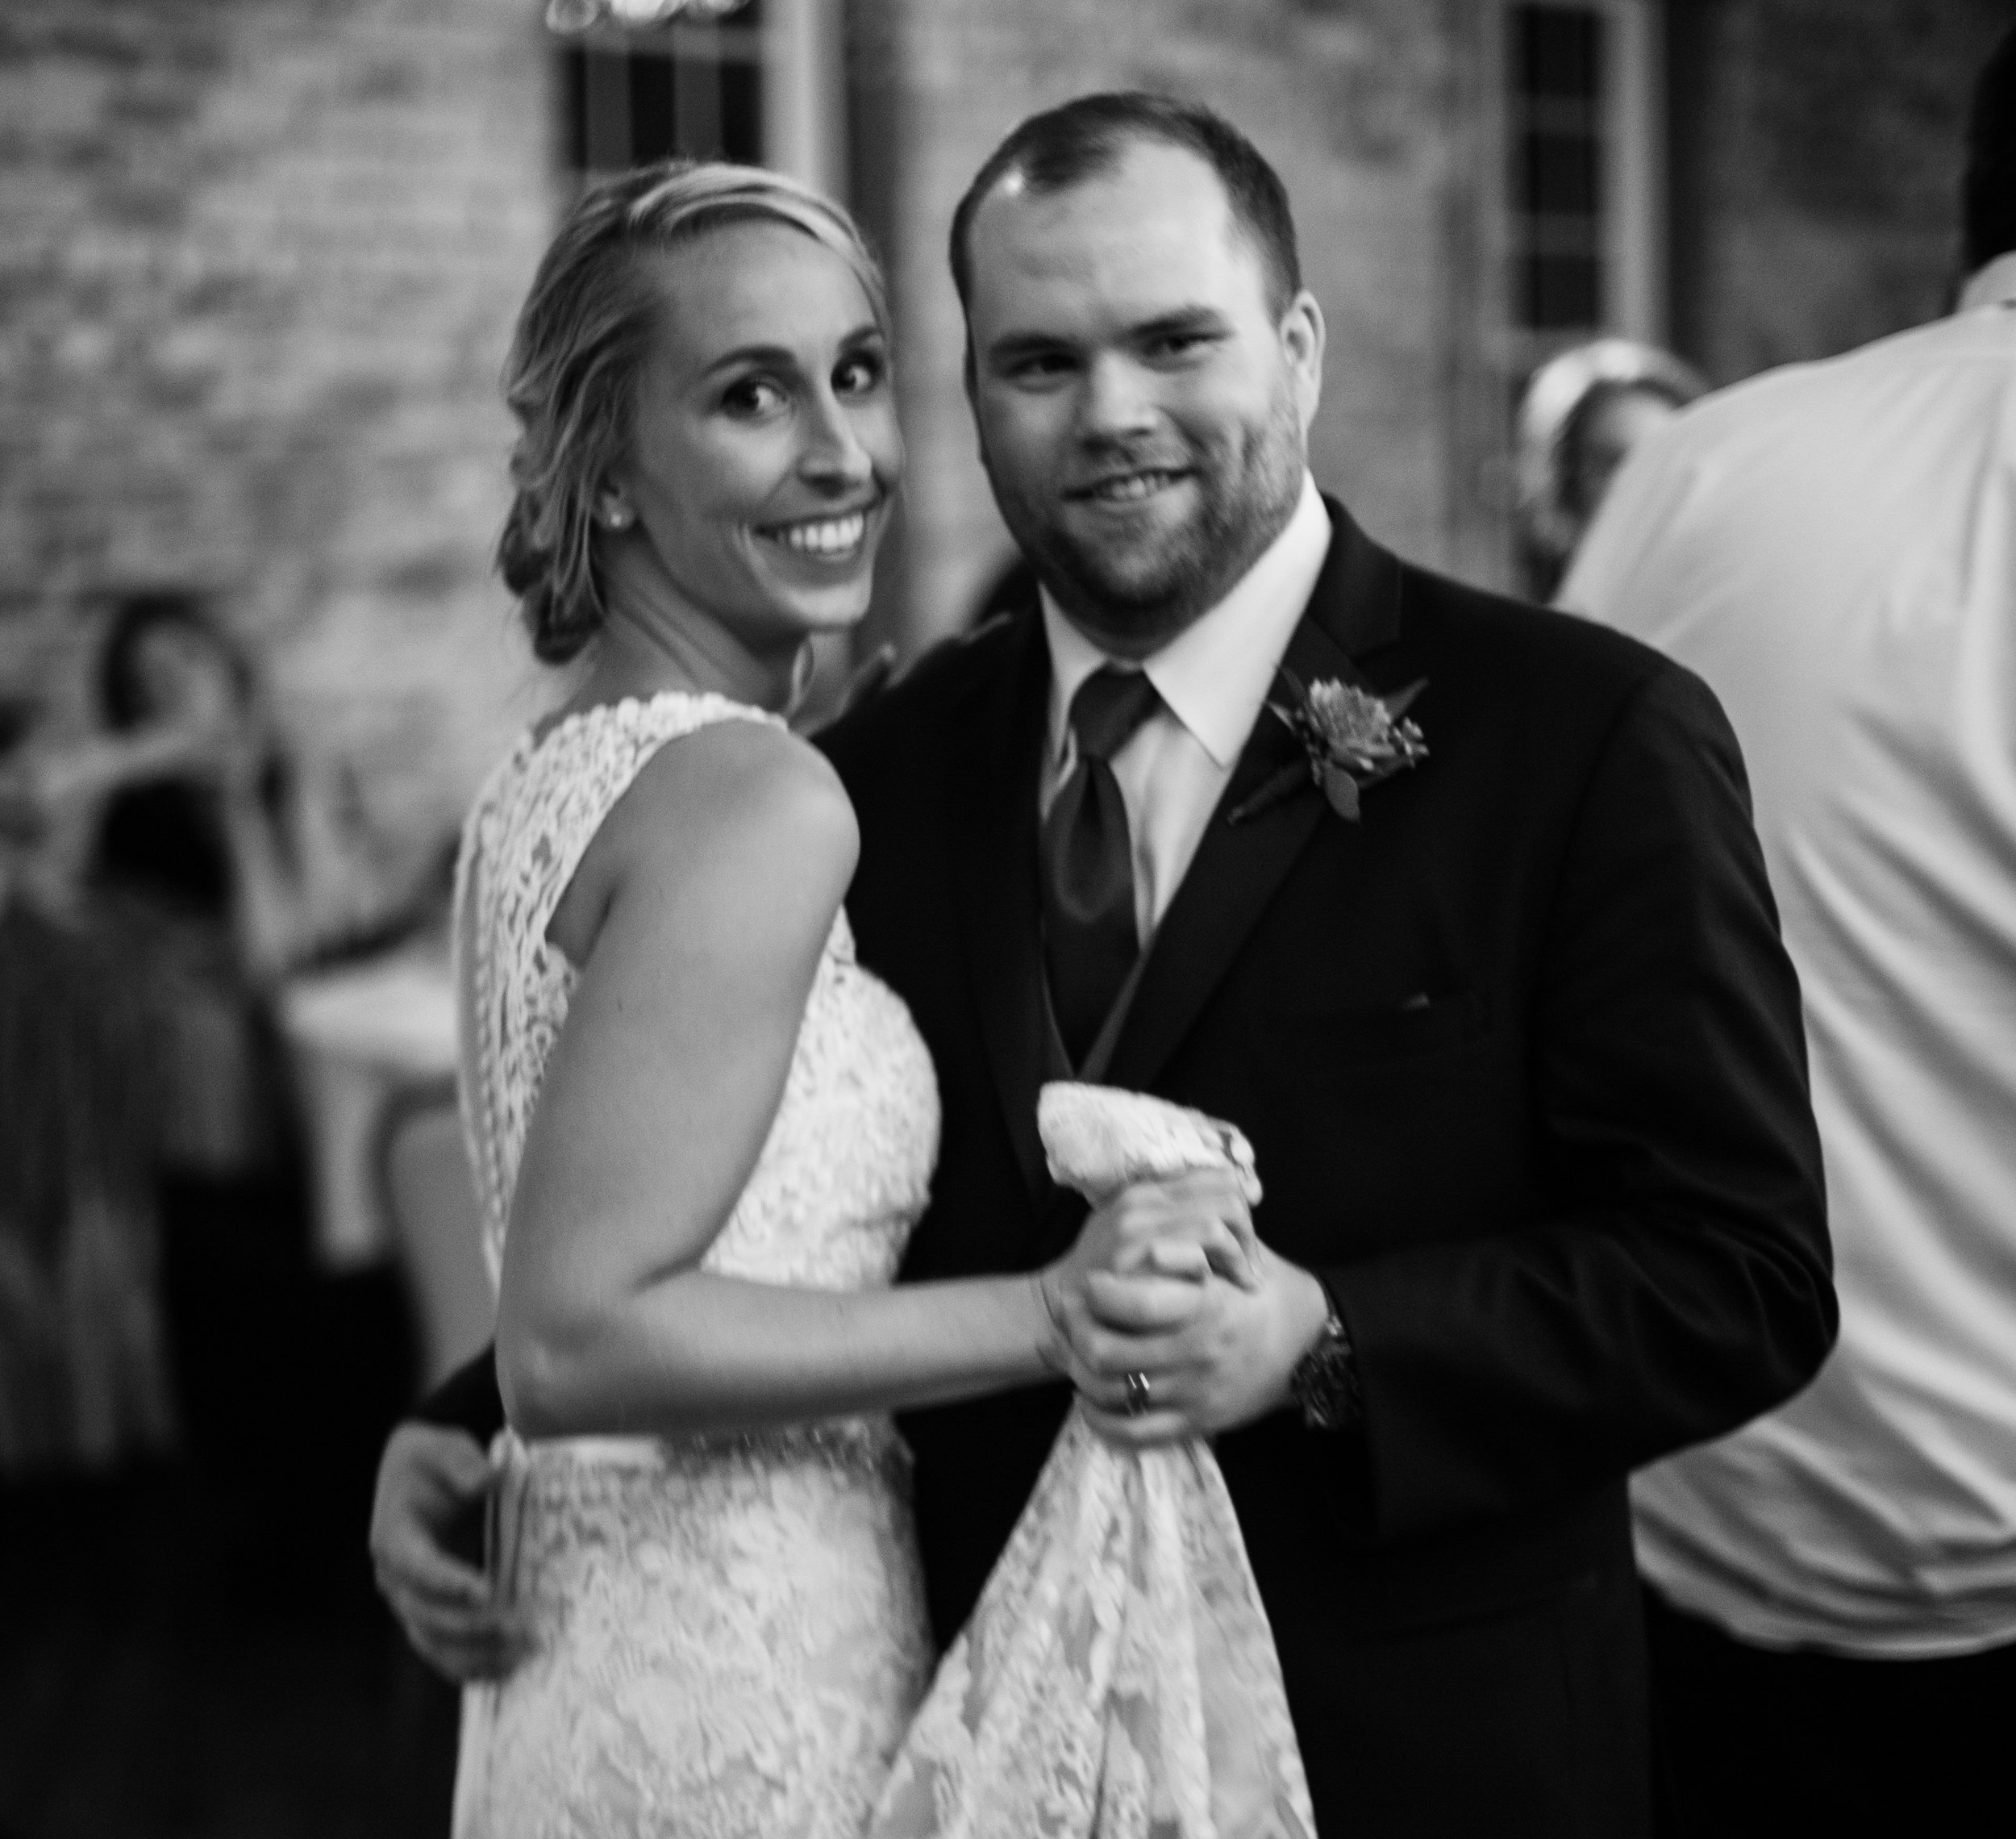 Maggie & Brad - 10.2017 - We cannot thank you enough for all of the time, effort and patience you put into make our wedding day absolutely perfect! Everything went as planned, the venue was beautiful, the food was great, and I received so many compliments about how wonderful the staff was. You have a special group there. Thanks for all you do to make the bride and groom's special day so magical!